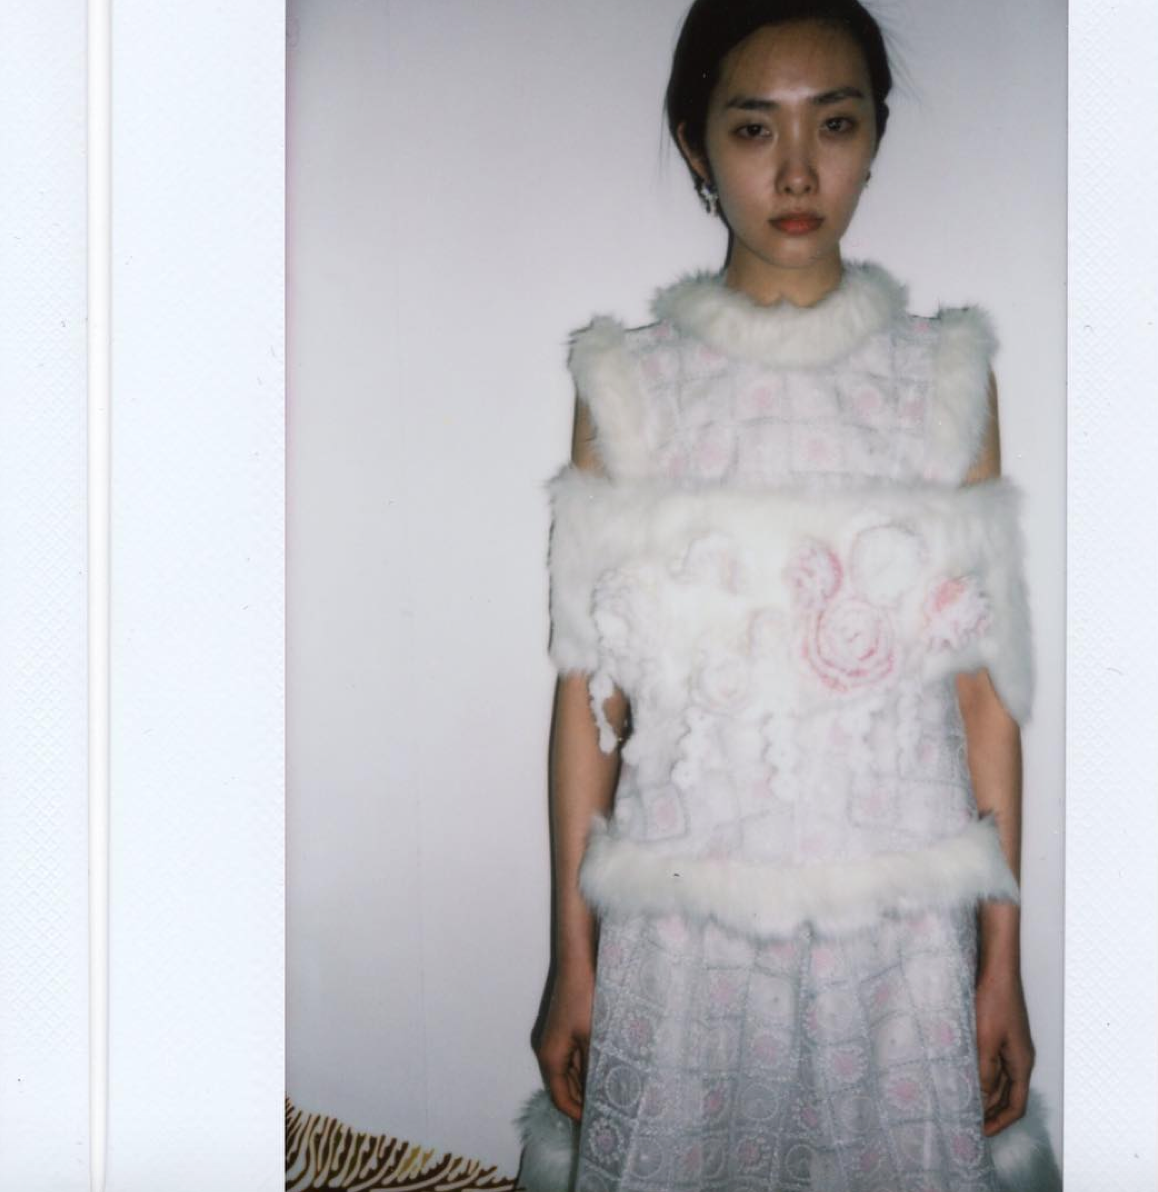 Backstage polariod from London designer Ryan Lo's Spring 2016 fashion show.